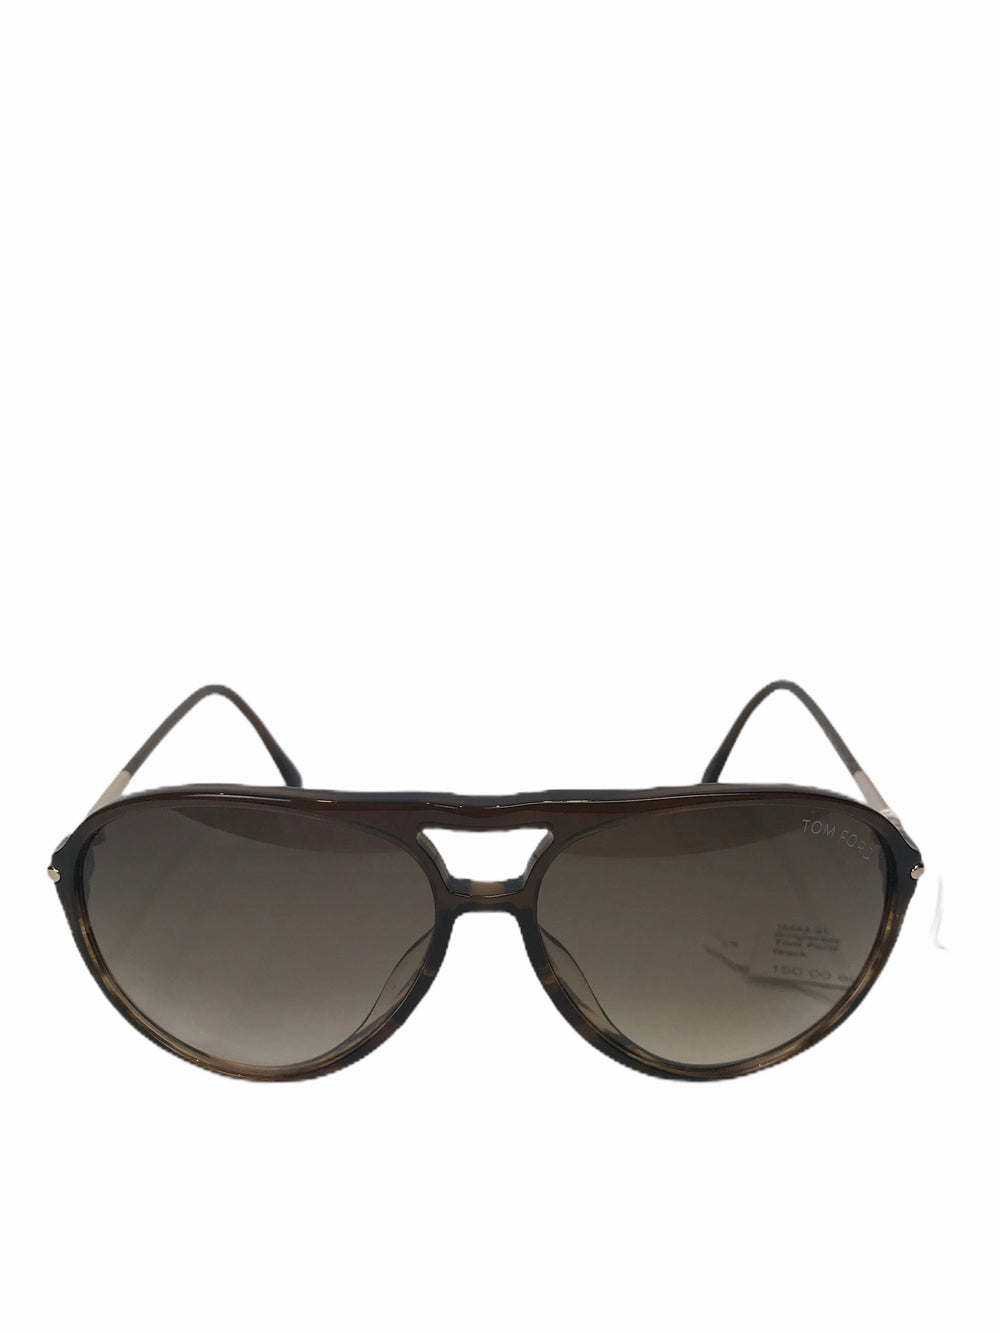 Tom Ford Sunglasses - As Seen on Instagram 29/07/20 - Siopaella Designer Exchange